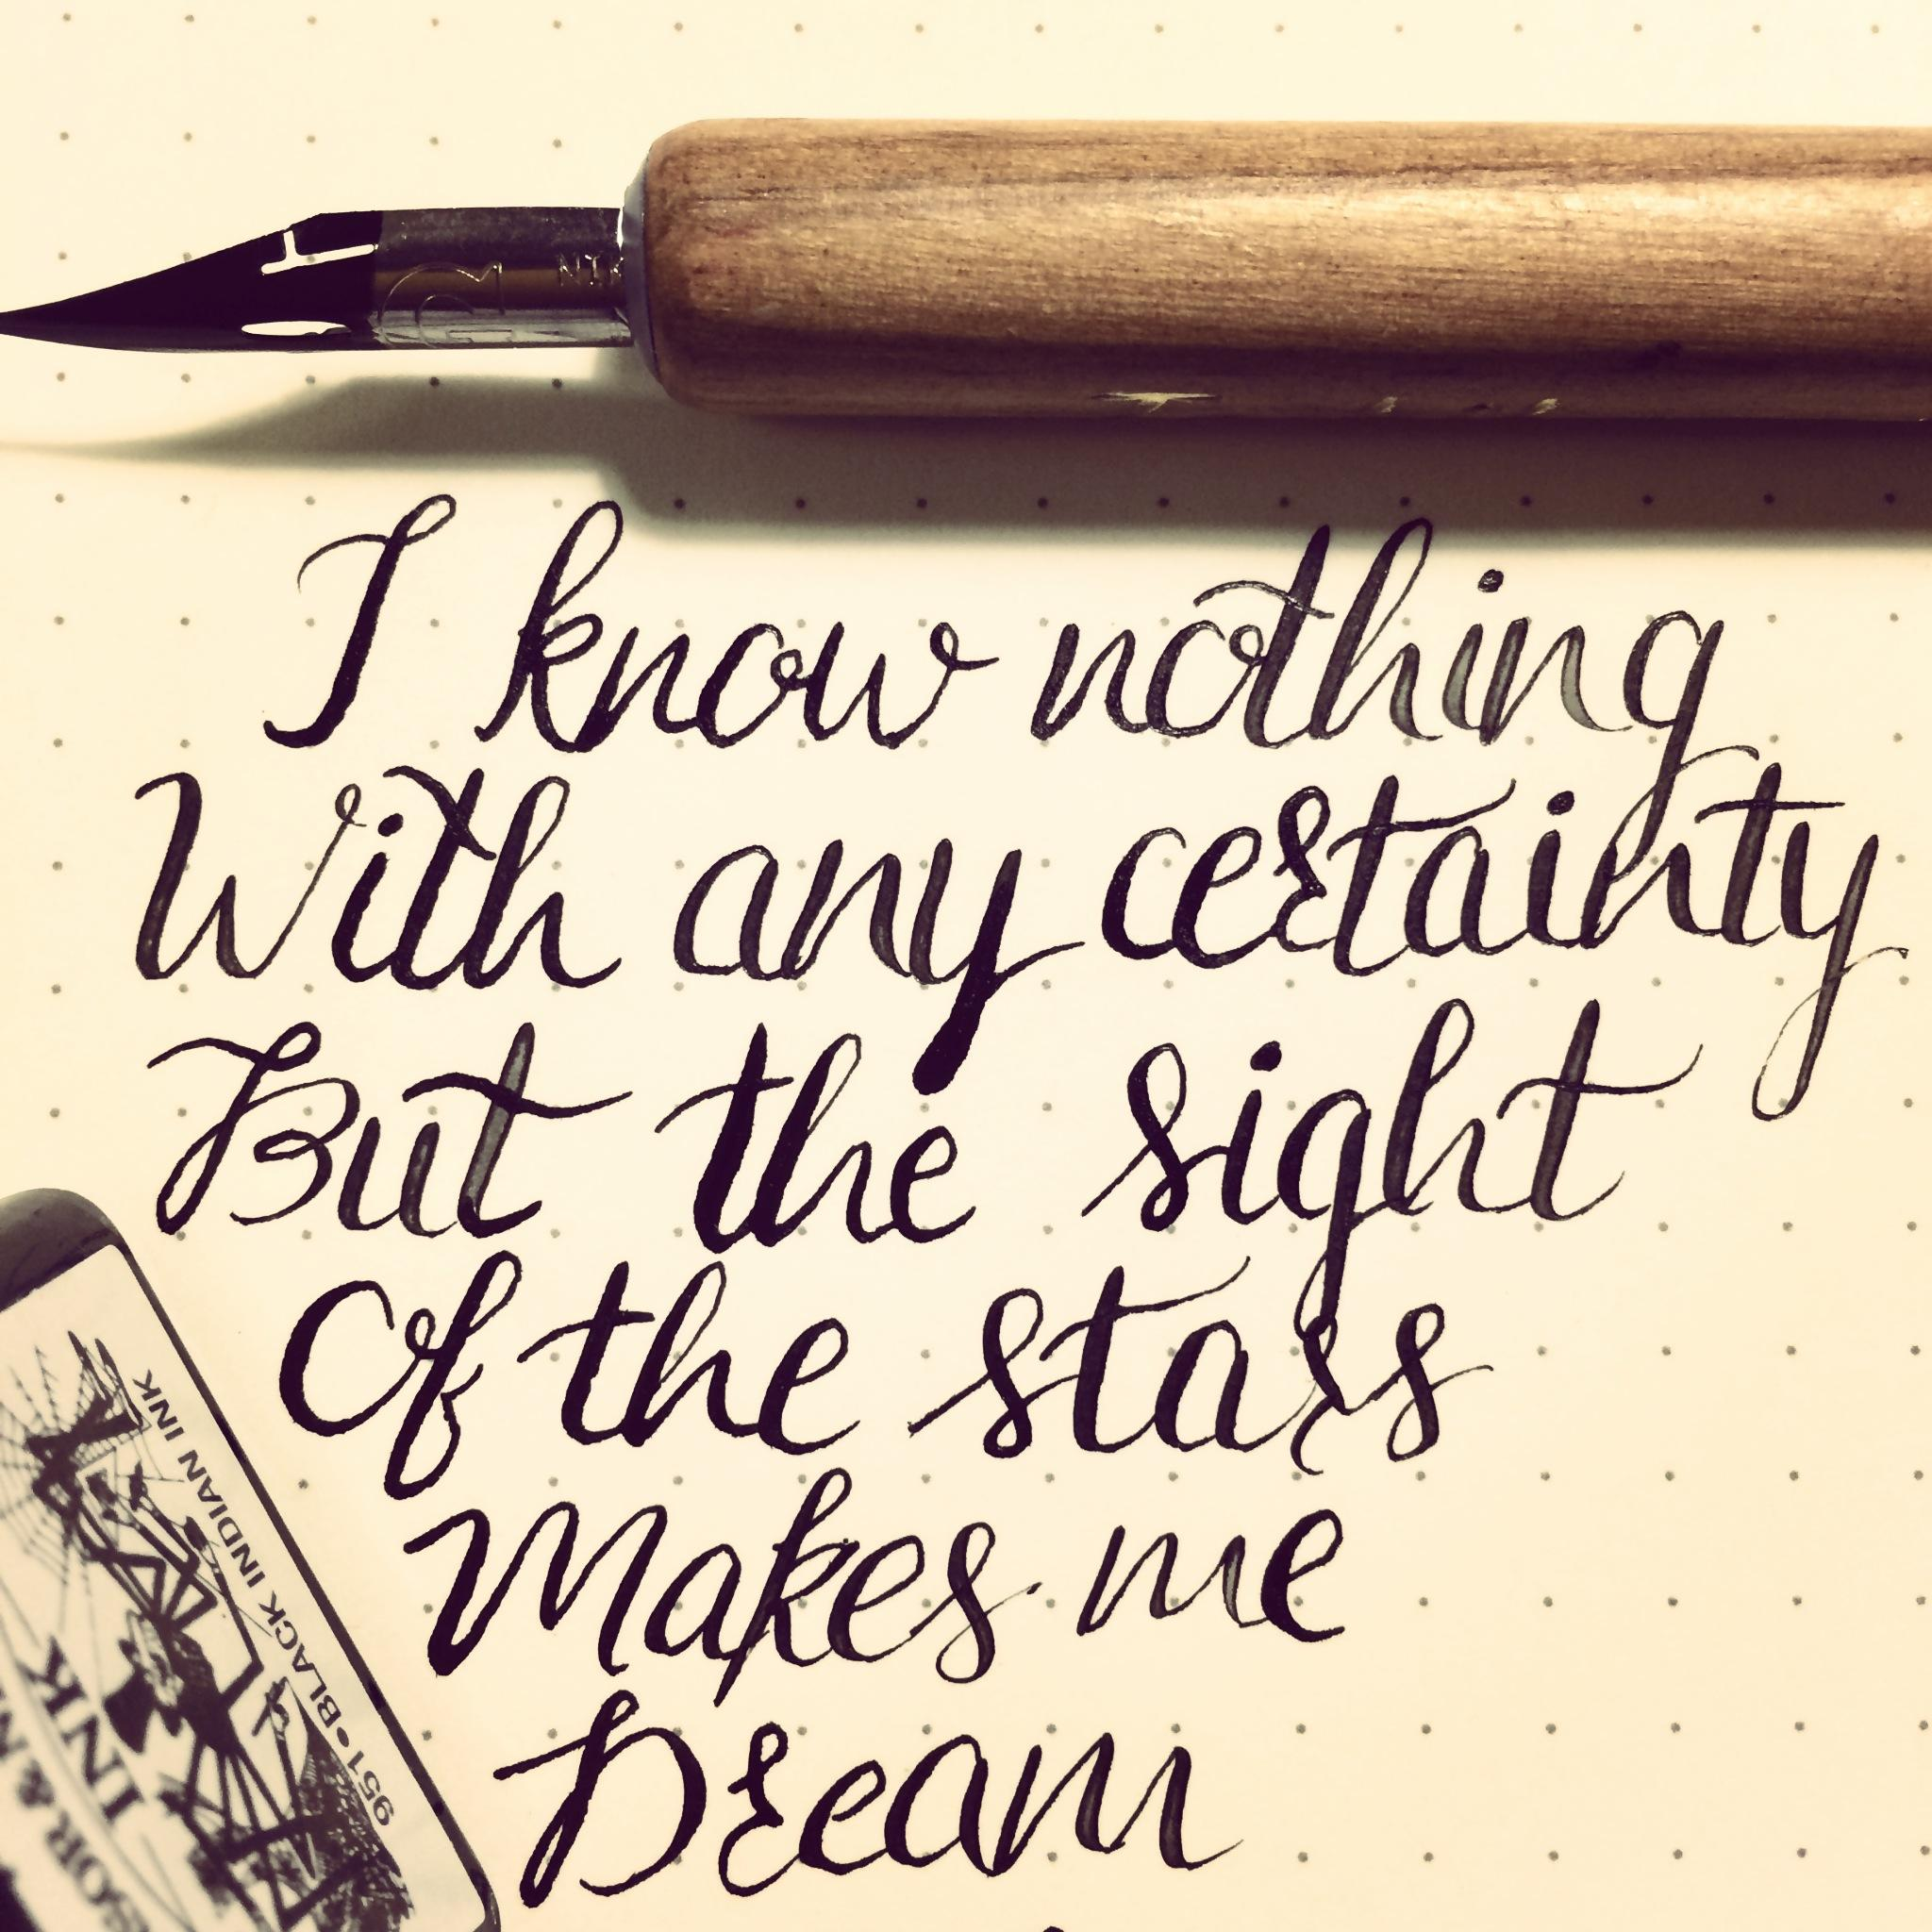 I Find The Best Way To Practice A Bunch Of Text Is Keep Writing My Favourite Quotes Van Gogh Painter All Time And This Quote